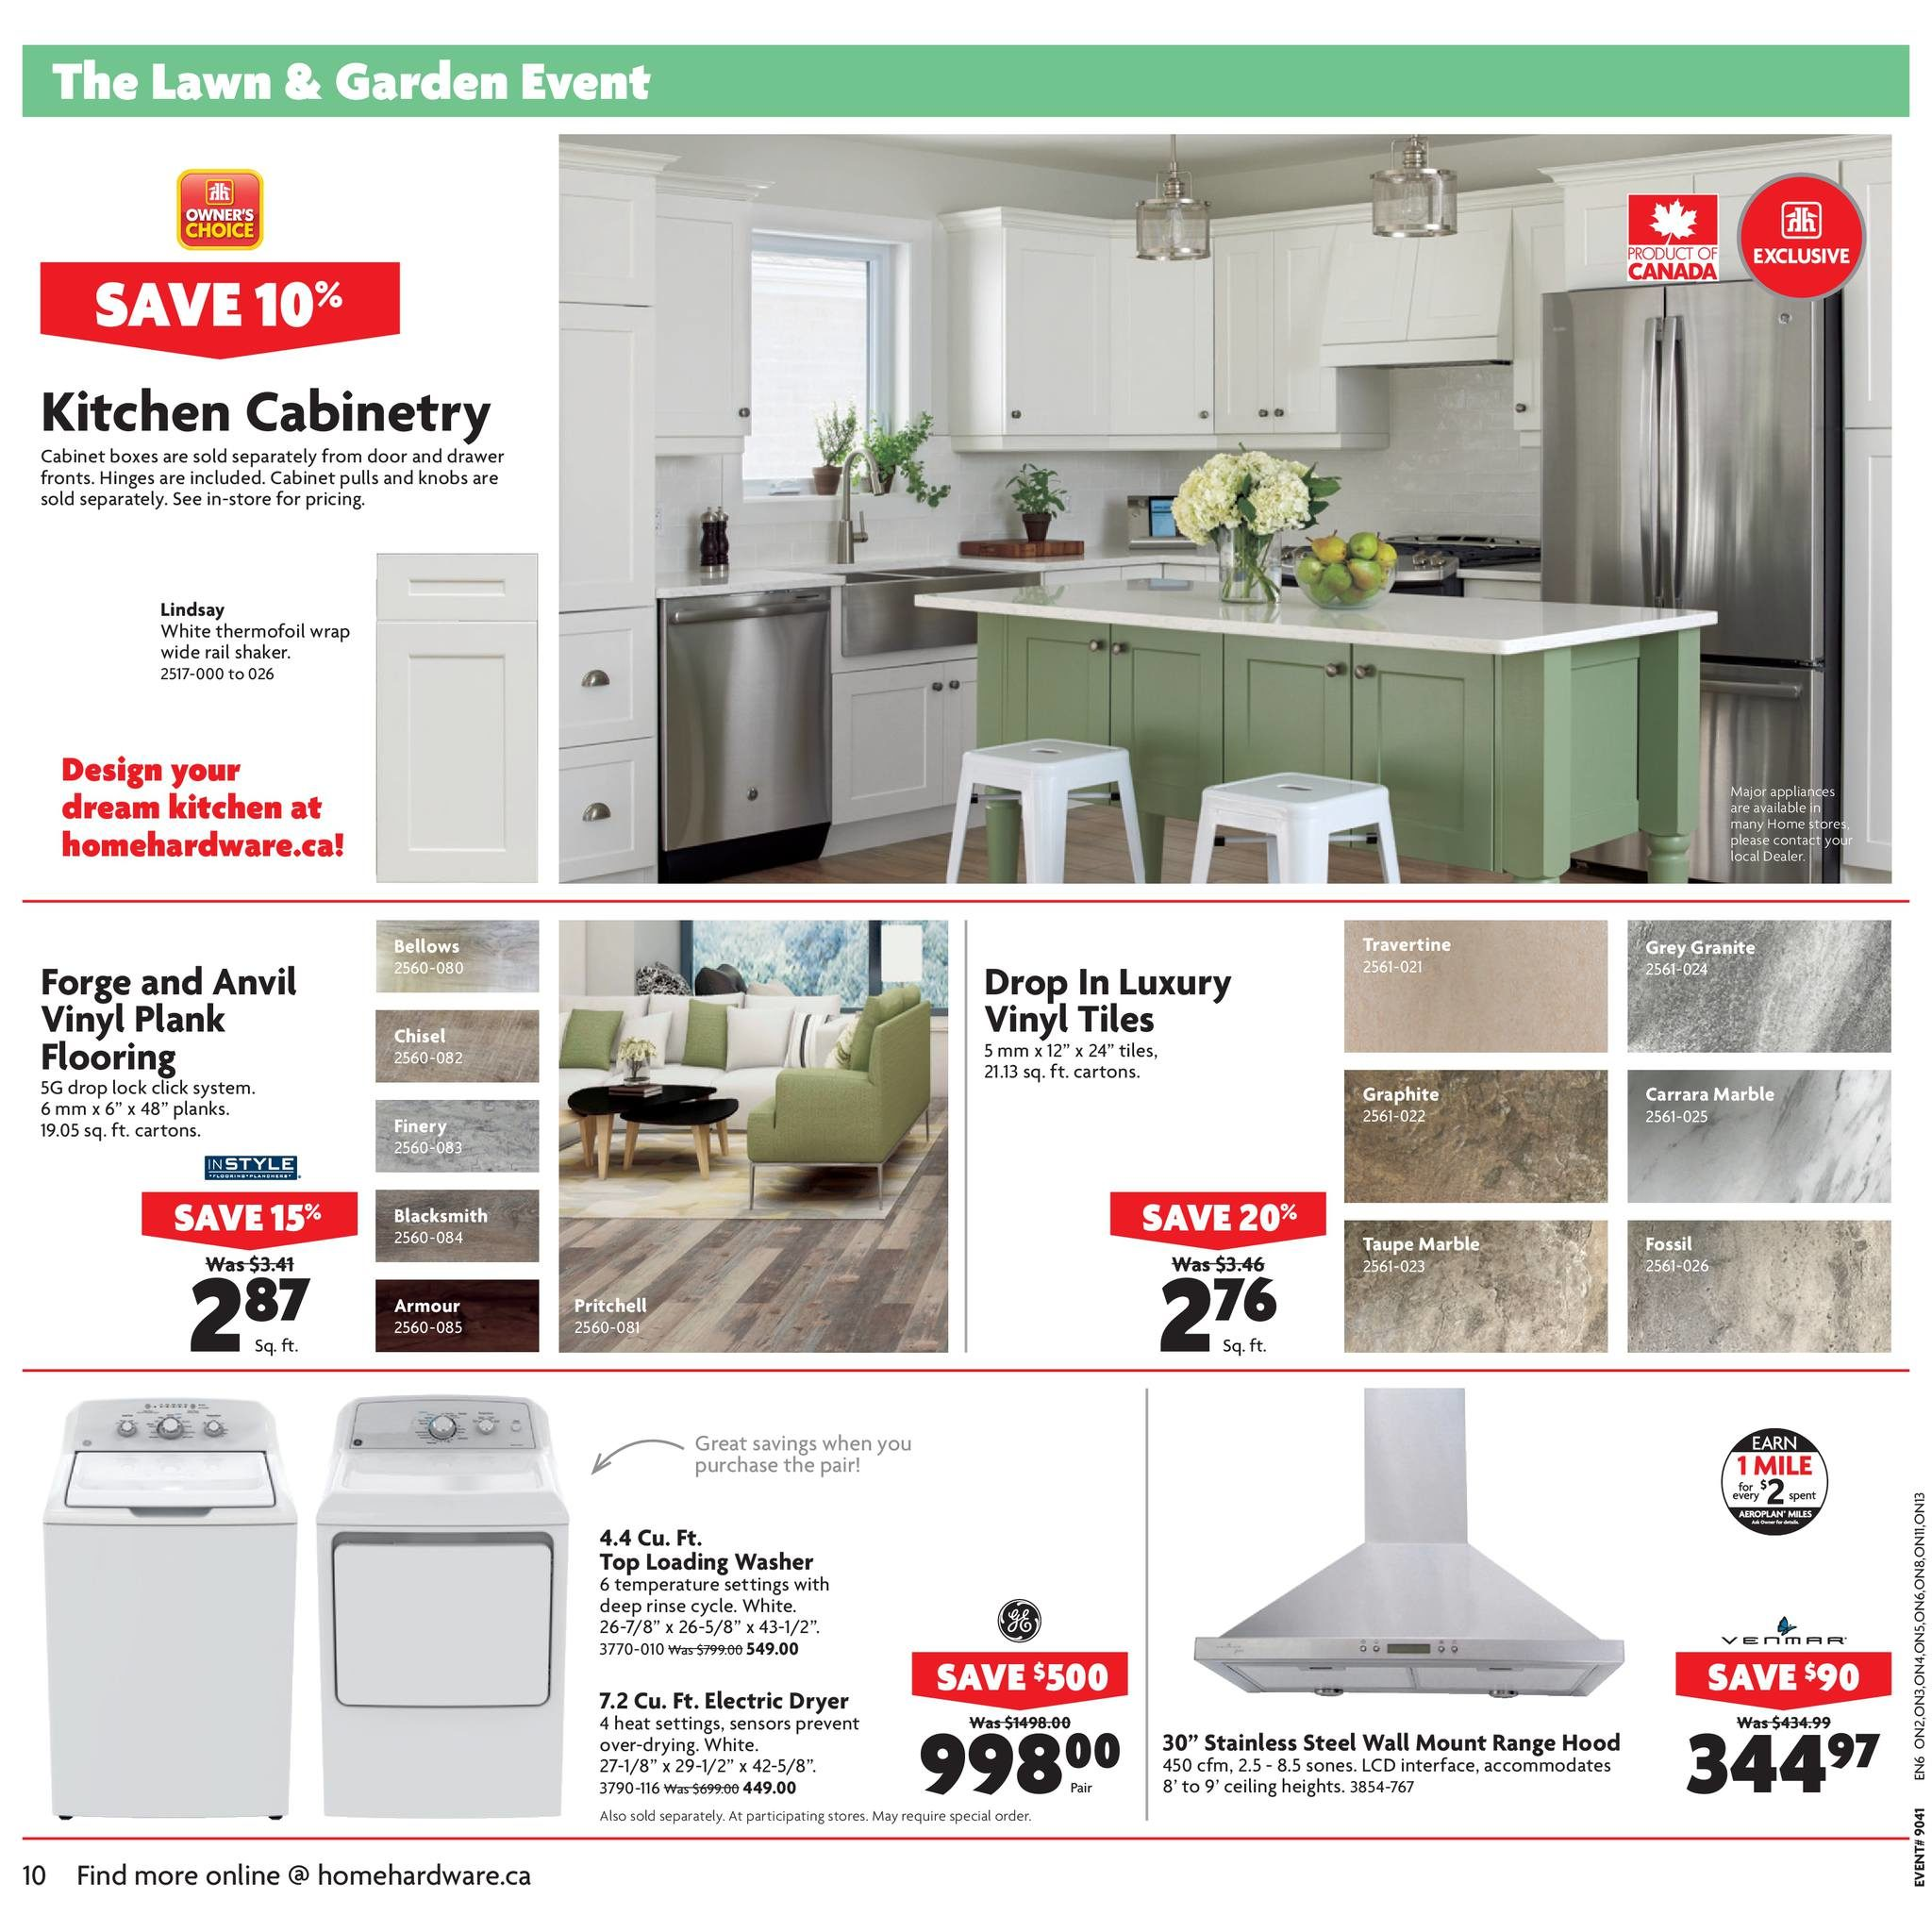 Home Hardware Weekly Flyer - Building Centre - The Lawn & Garden ...